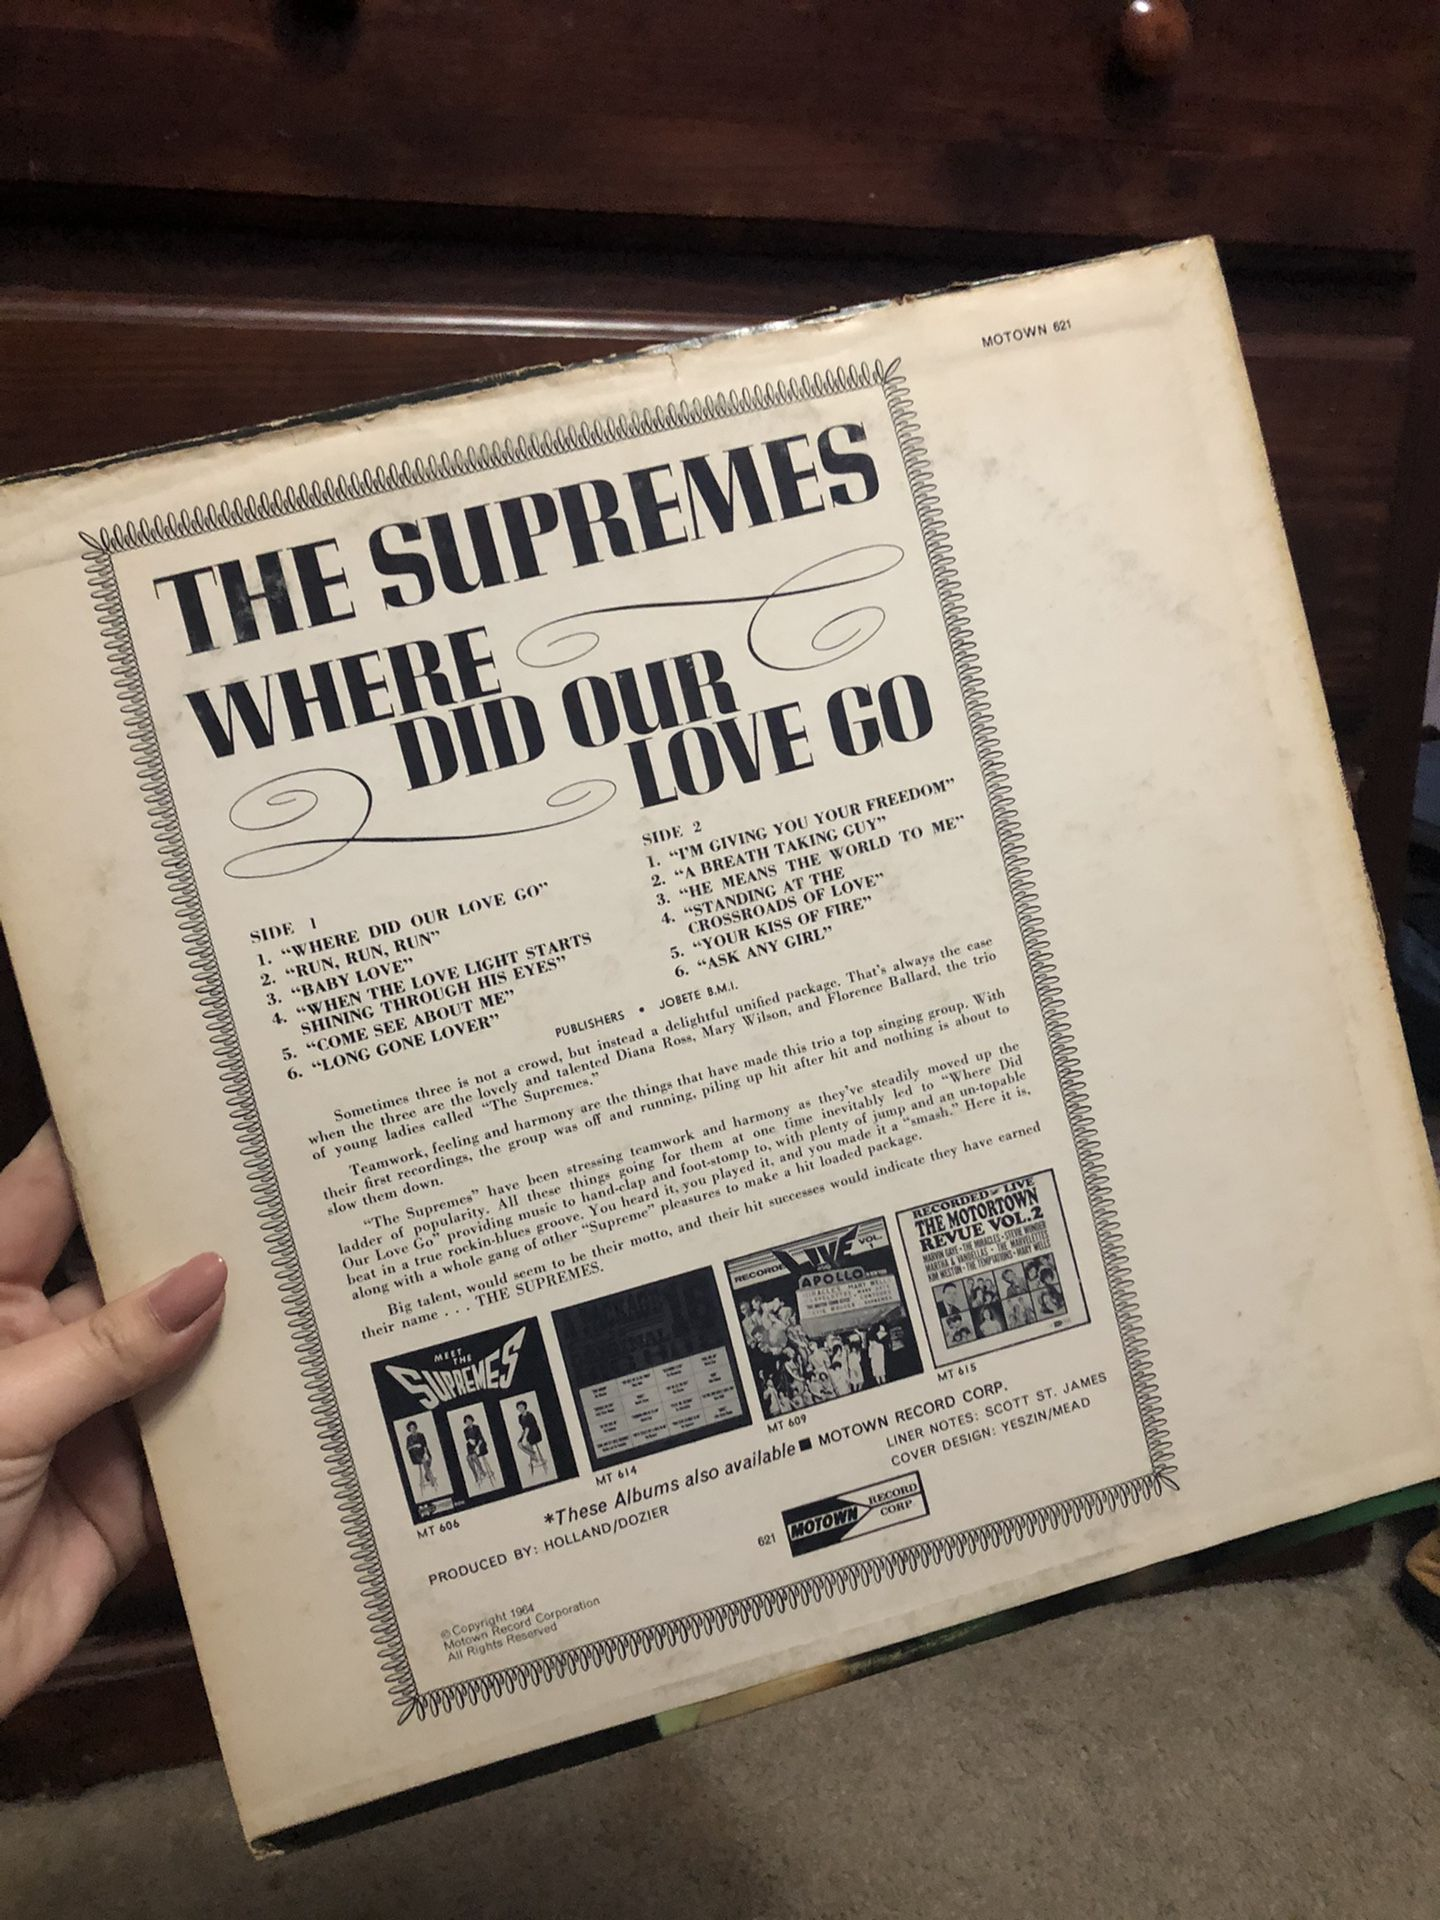 Where Did Our Love Go by The Supremes vinyl